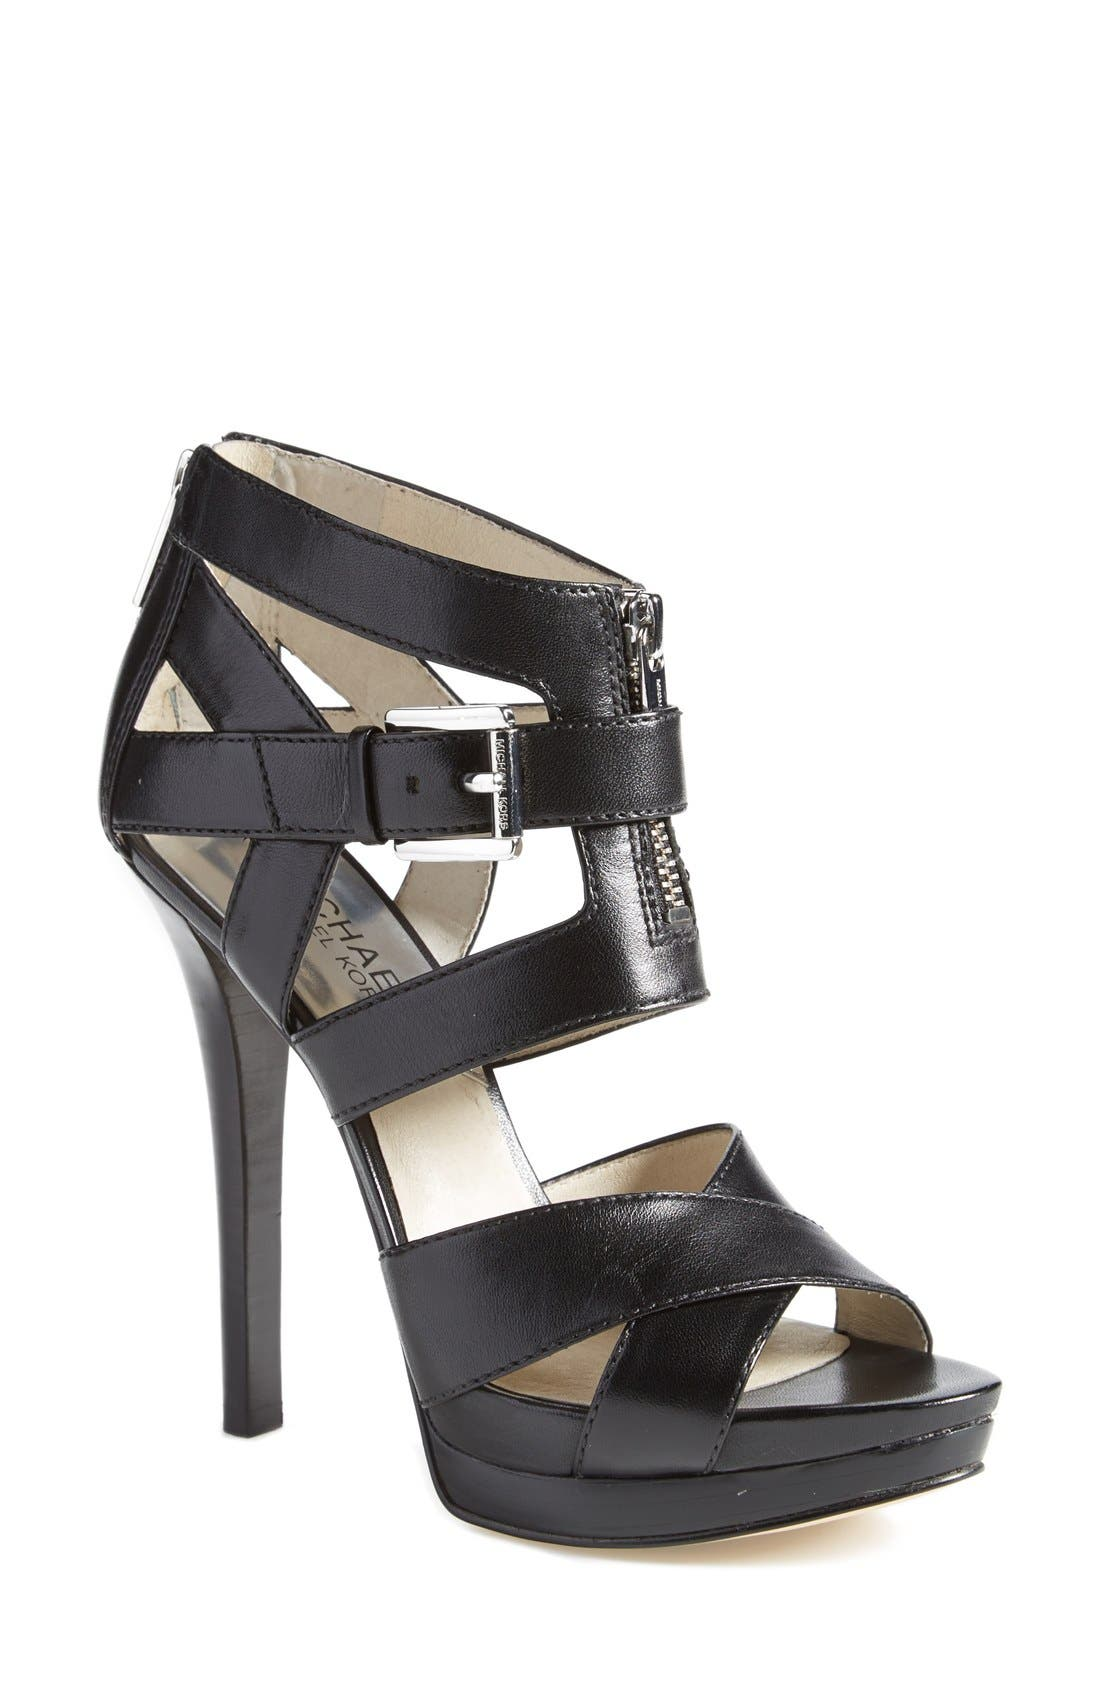 Alternate Image 1 Selected - MICHAEL Michael Kors 'Anya' Platform Sandal (Women)